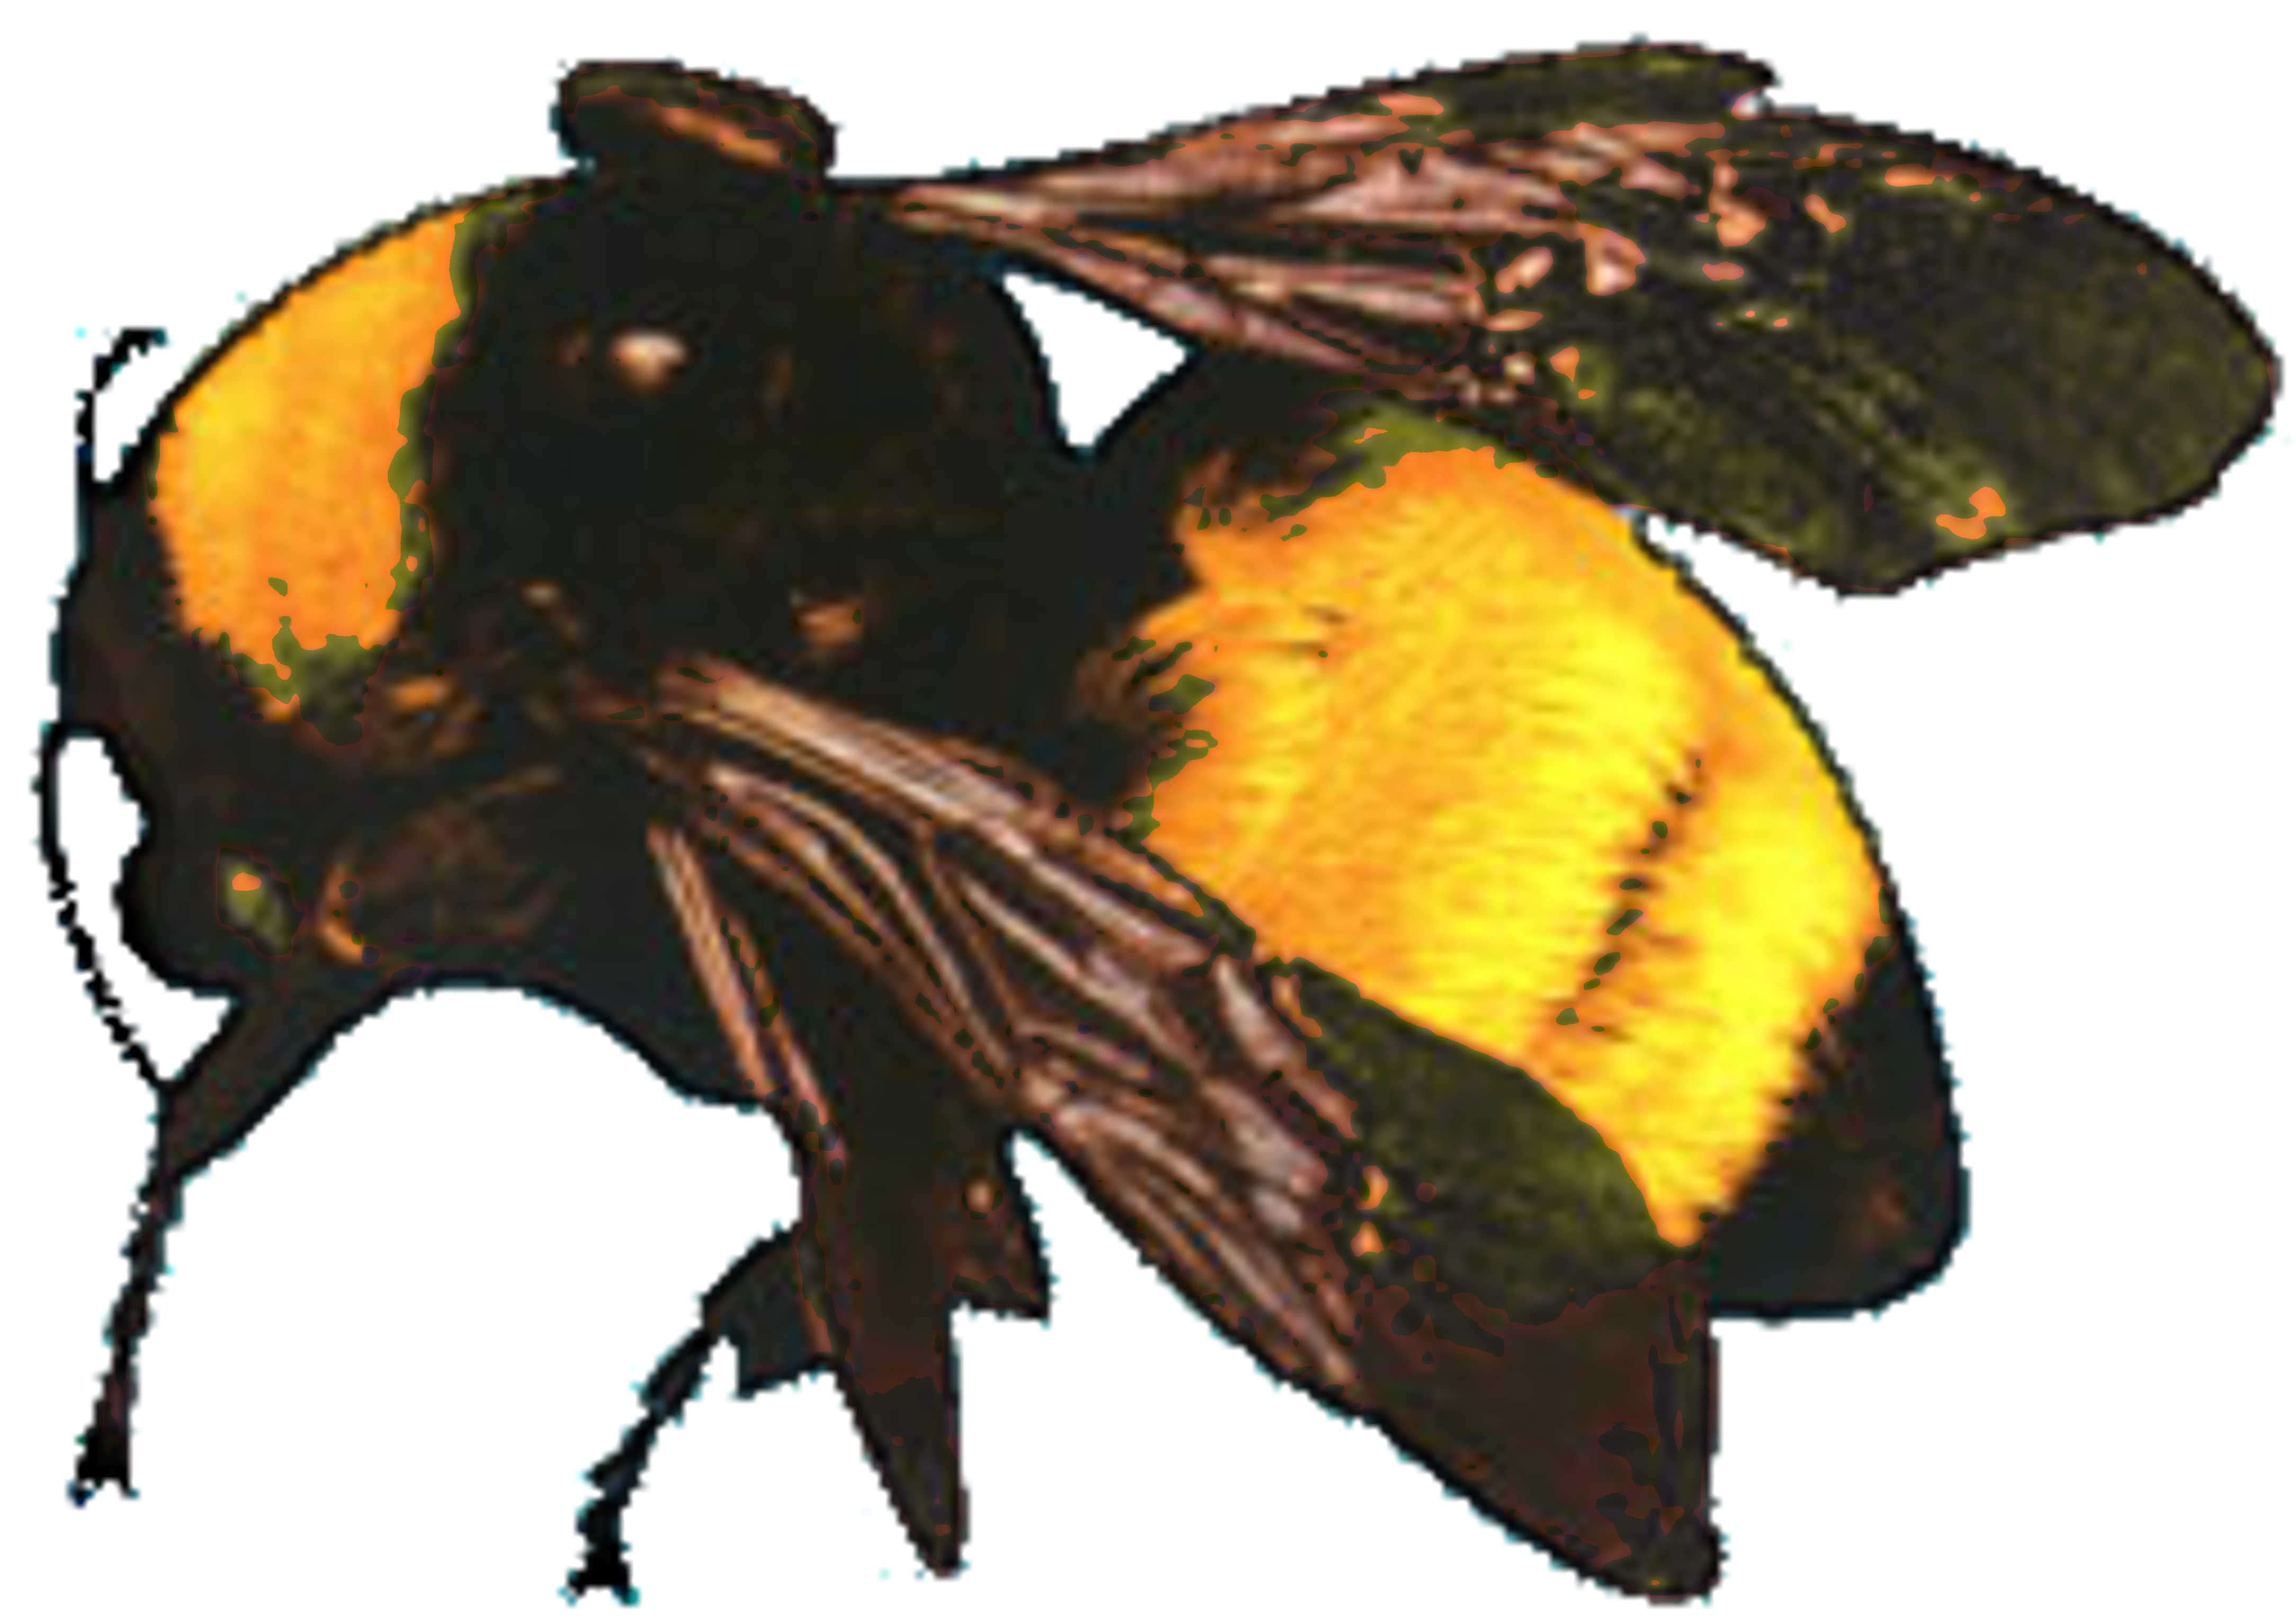 Bees transparent flower boy. Who dat odd future